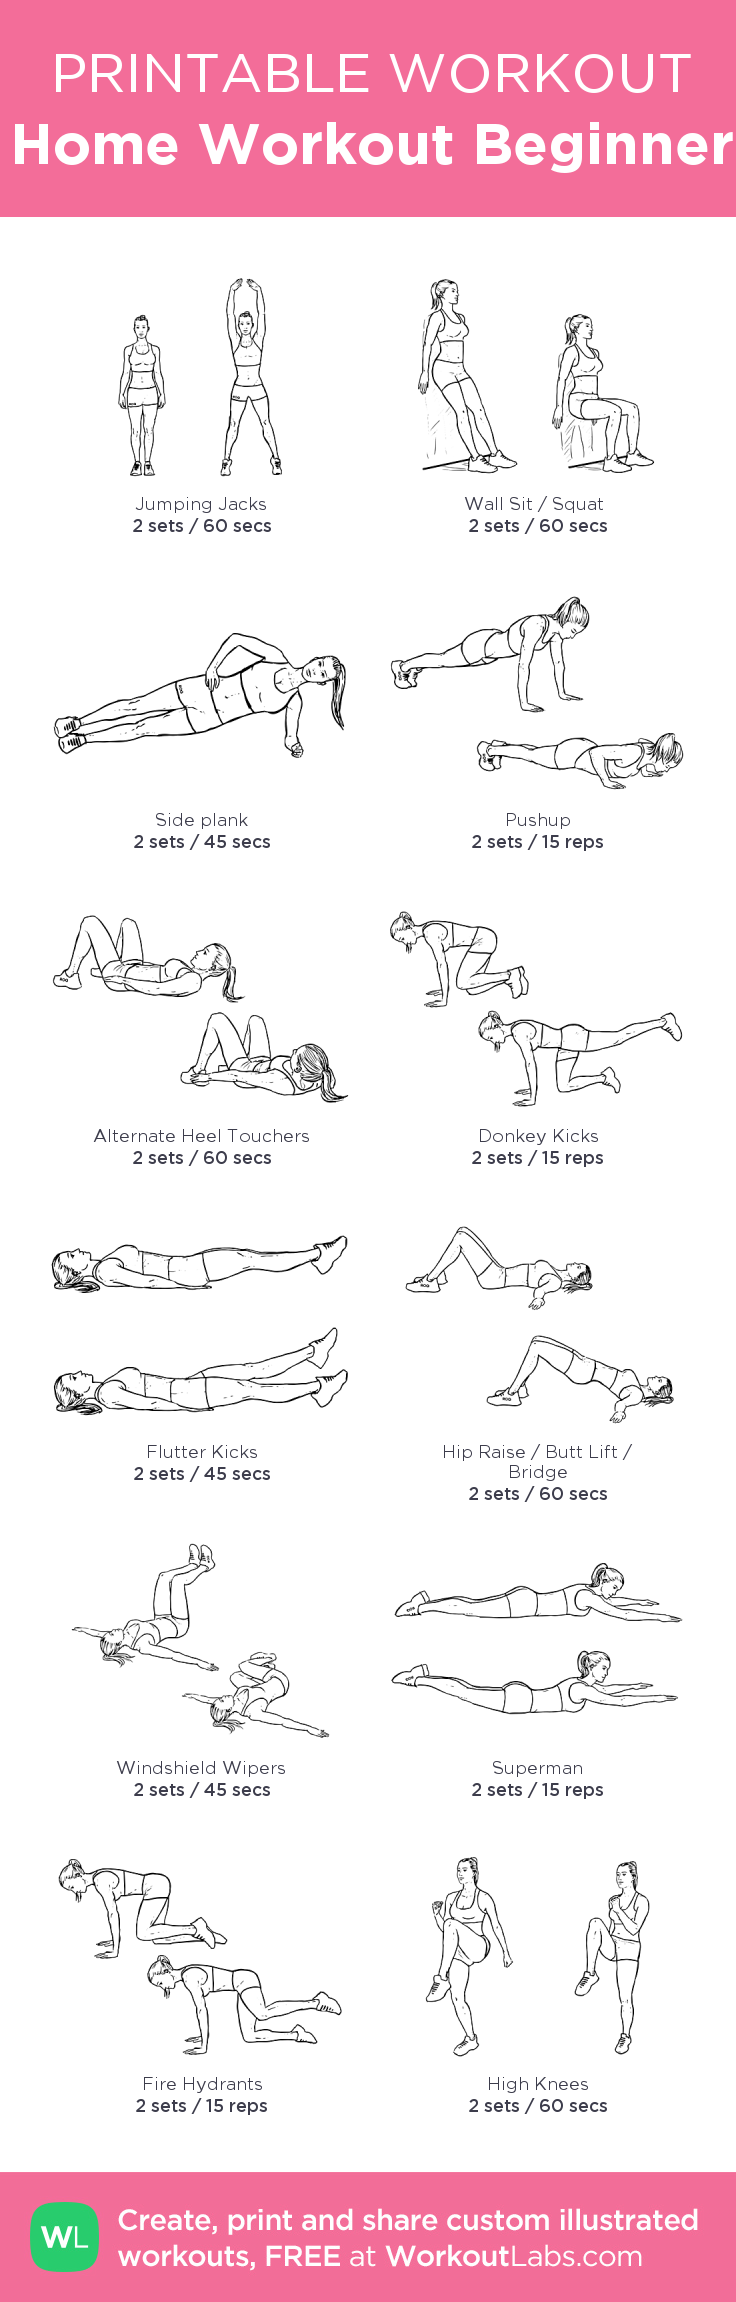 Old Fashioned image pertaining to free printable workout plans